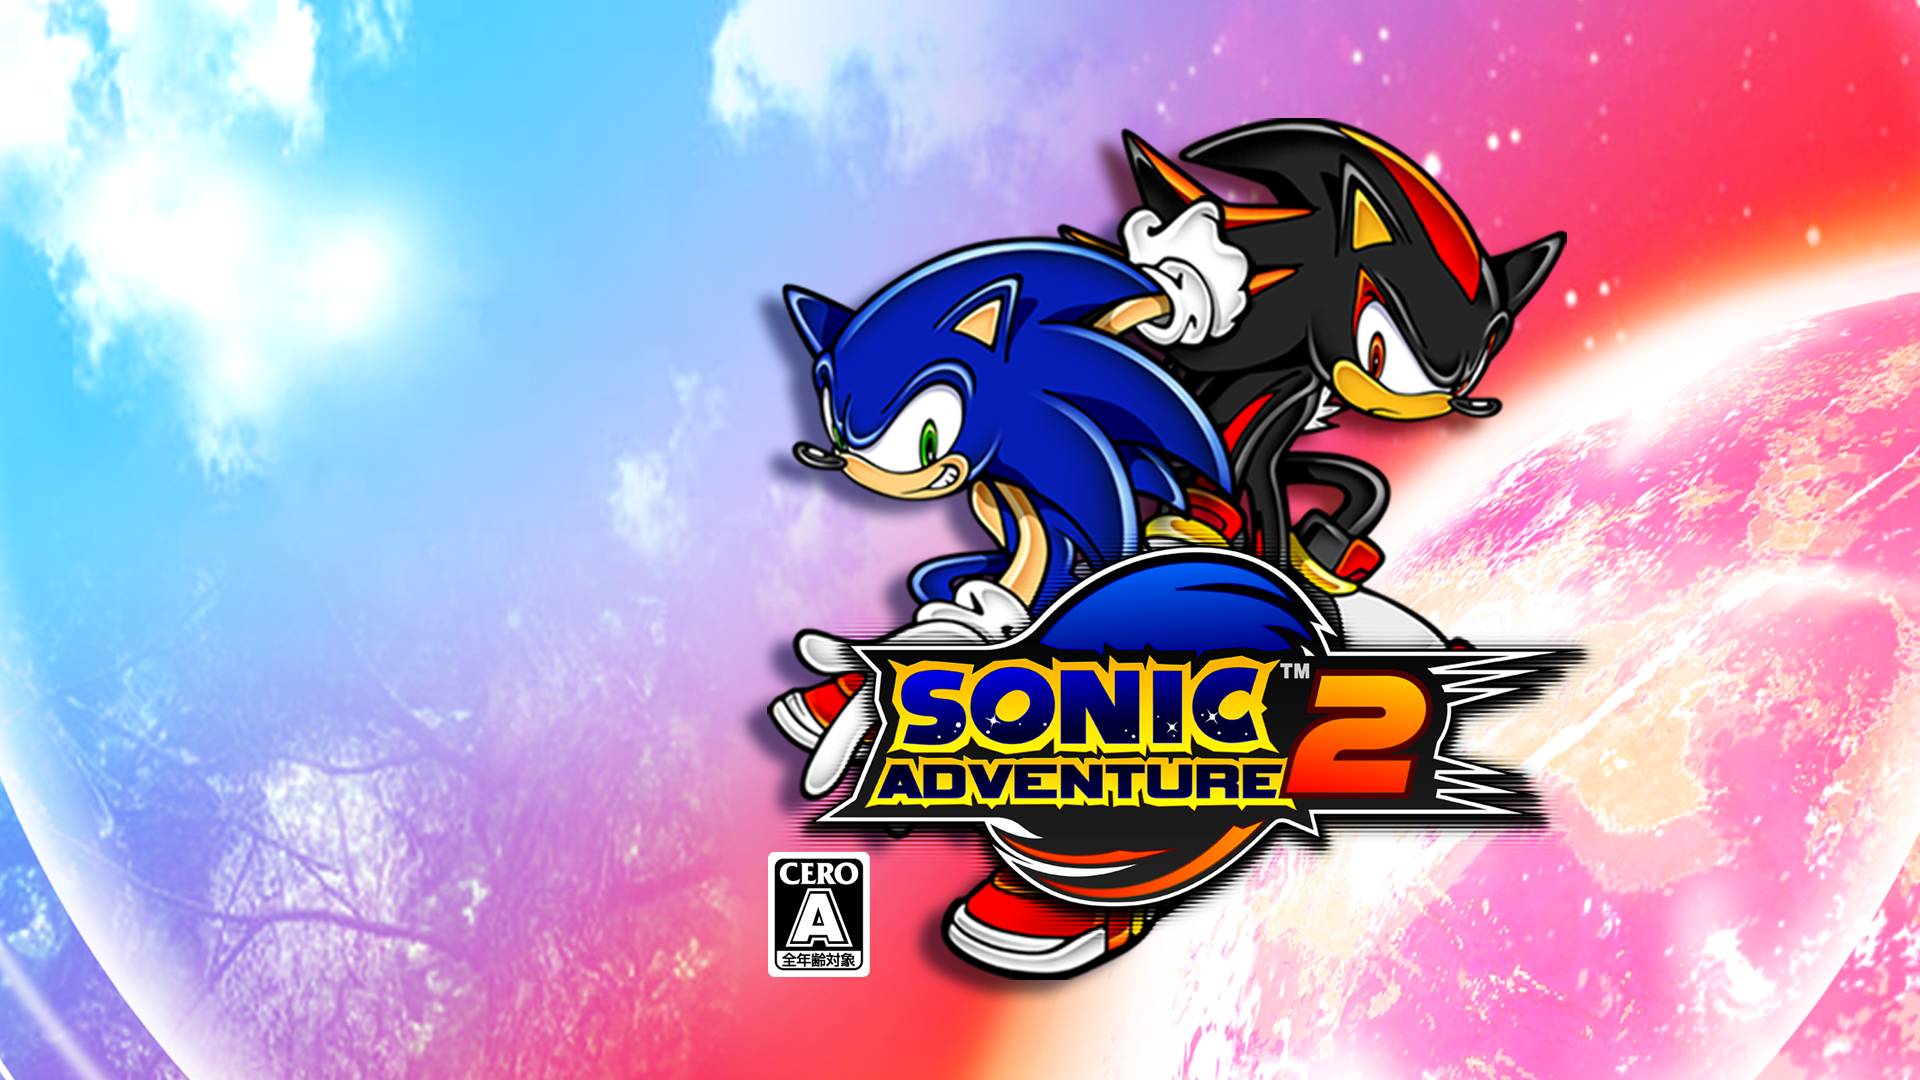 Sonic 2 HD wallpapers | Sonic 2 HD stock photos